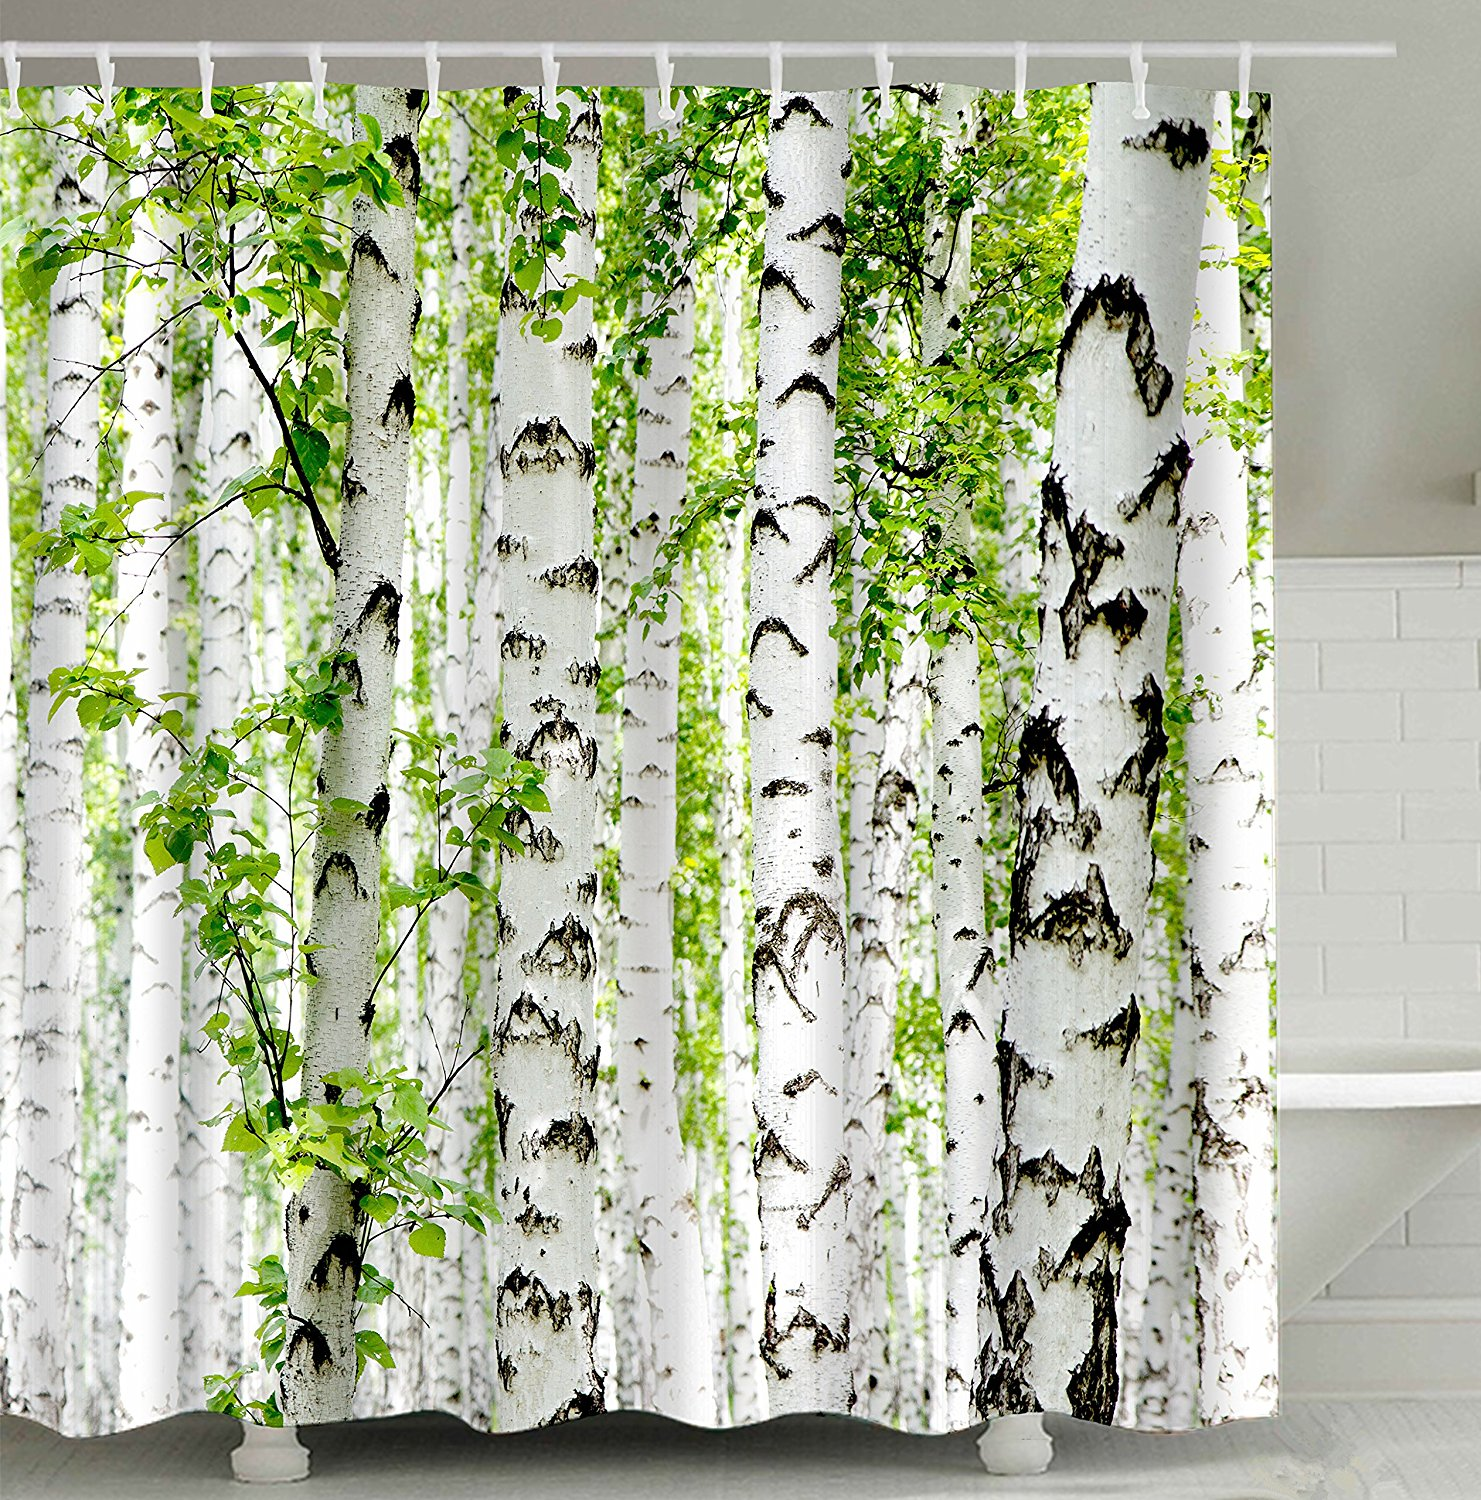 CHARMHOME Birch Tree Forest Branch Leaves Waterproof And Mildew Resistant Fabric Bathroom Shower